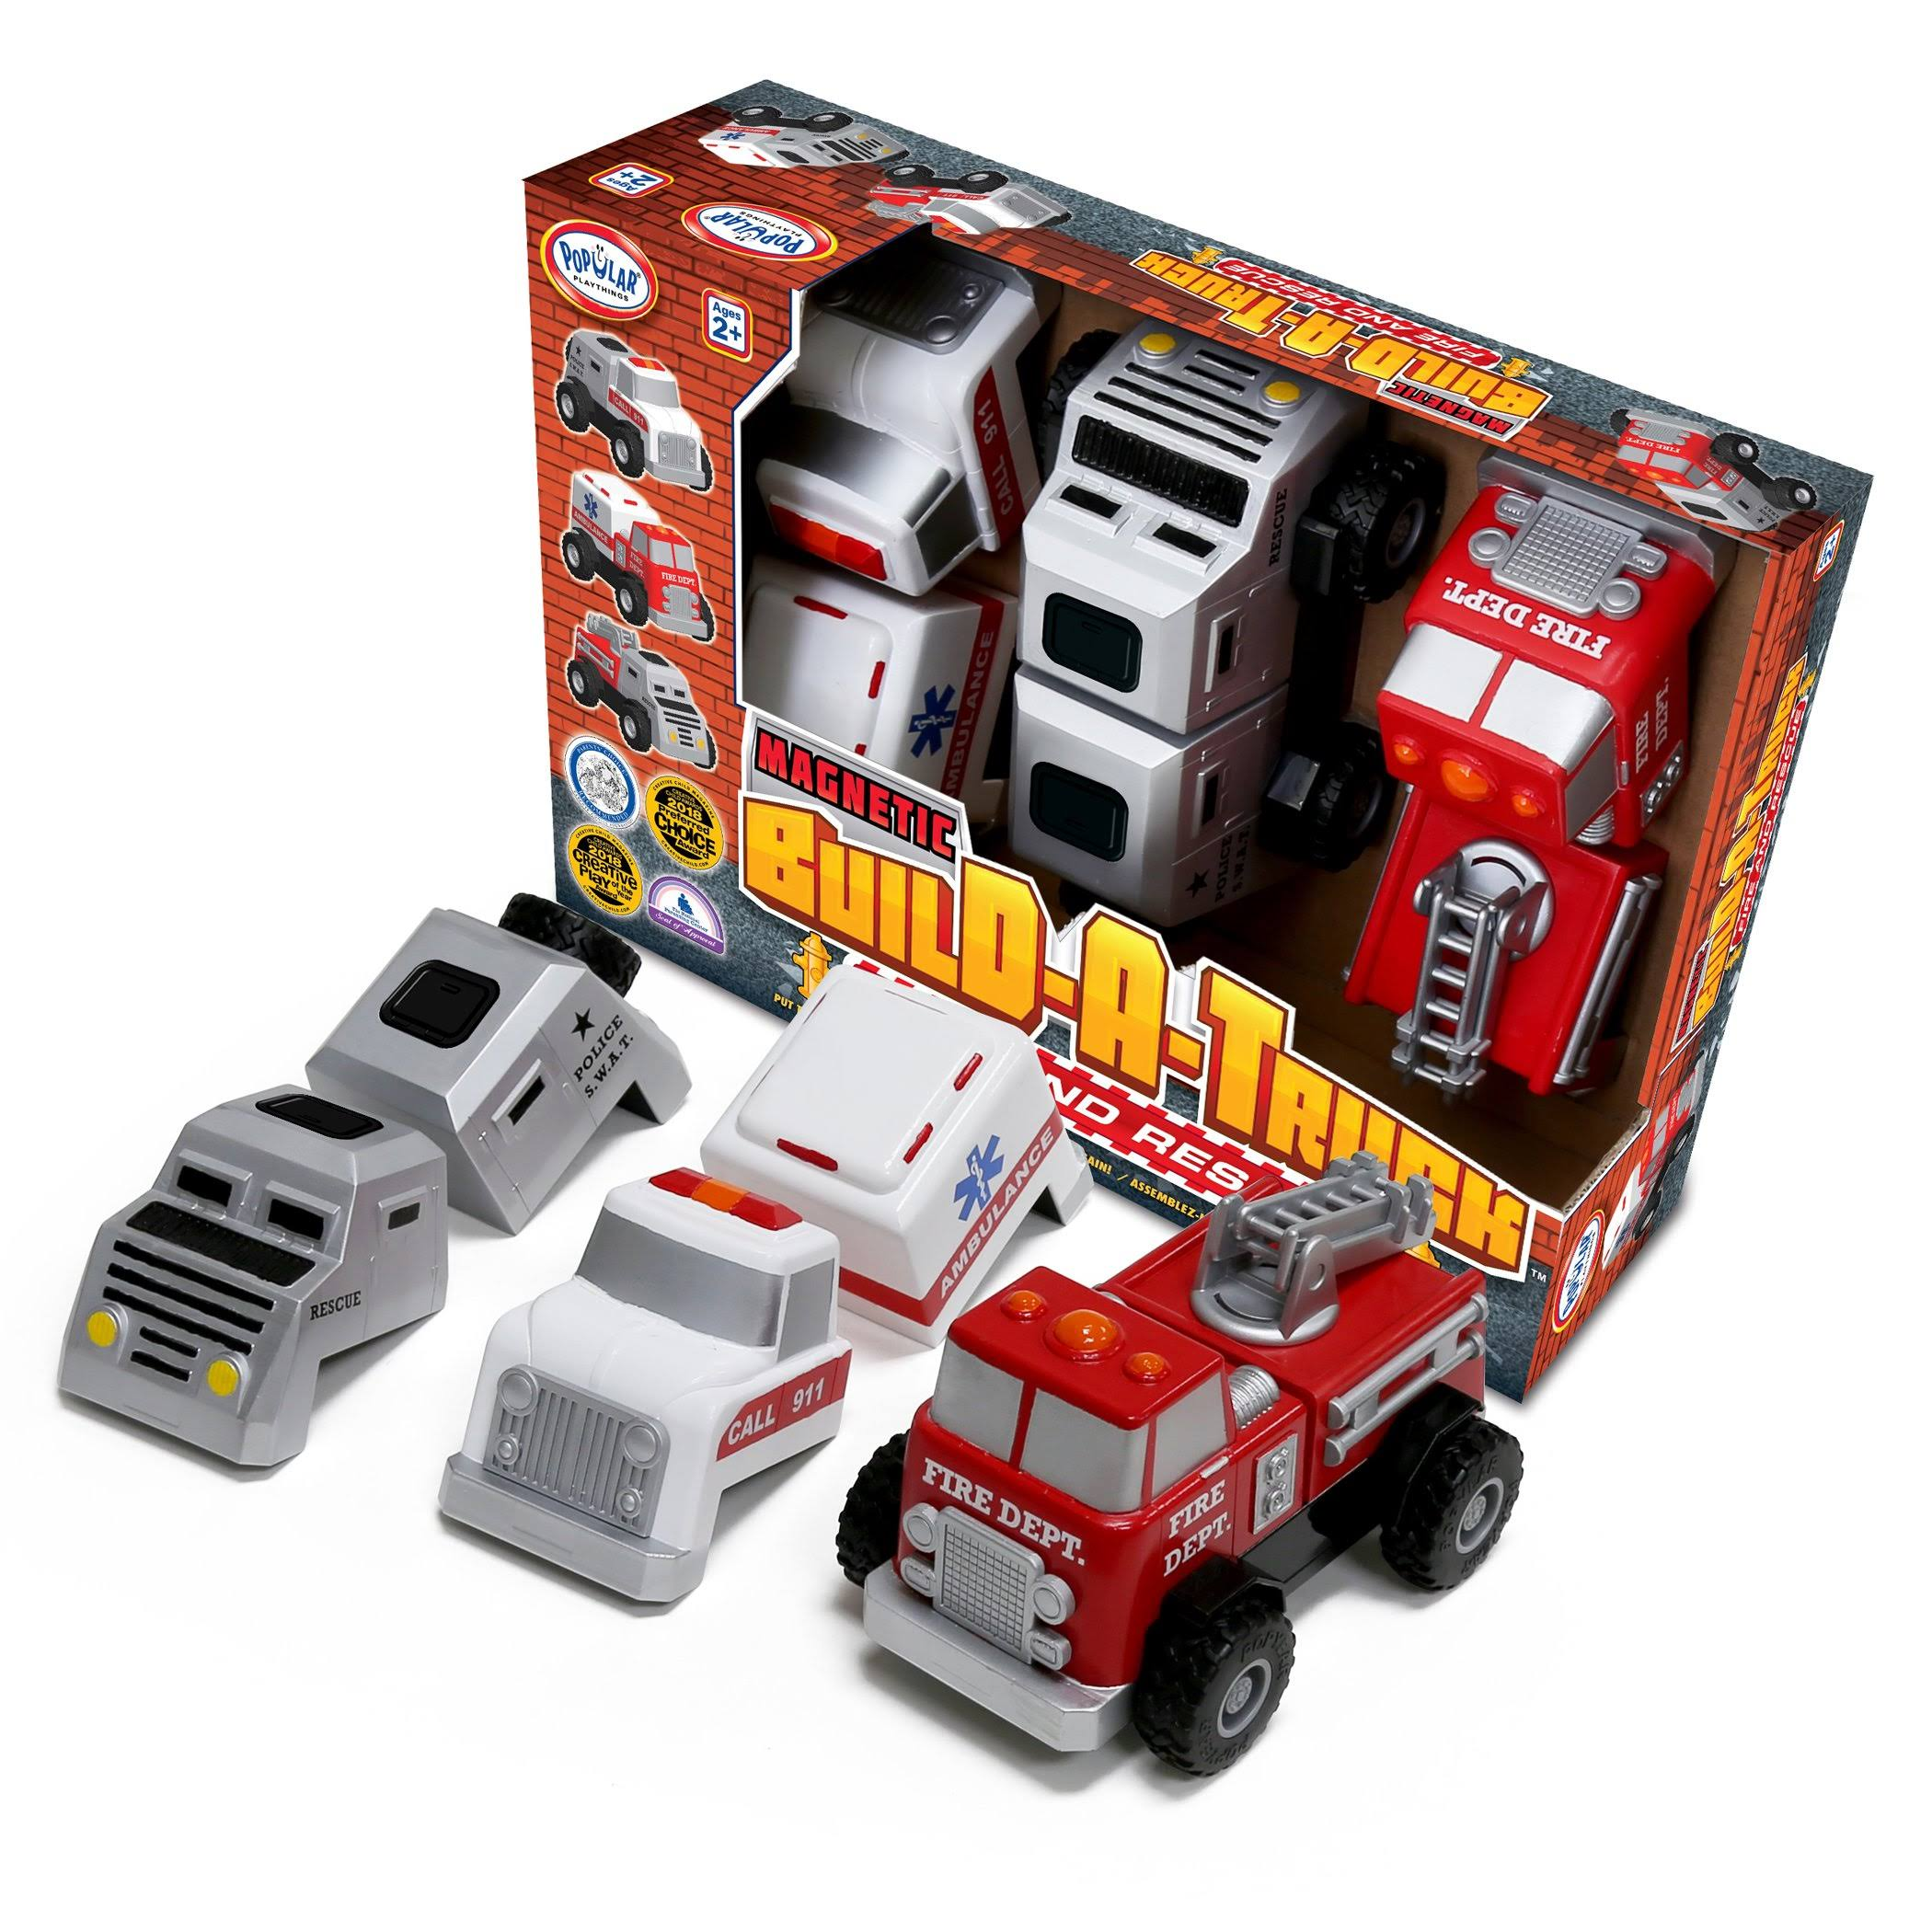 Popular Playthings Build - A - Truck Rescue